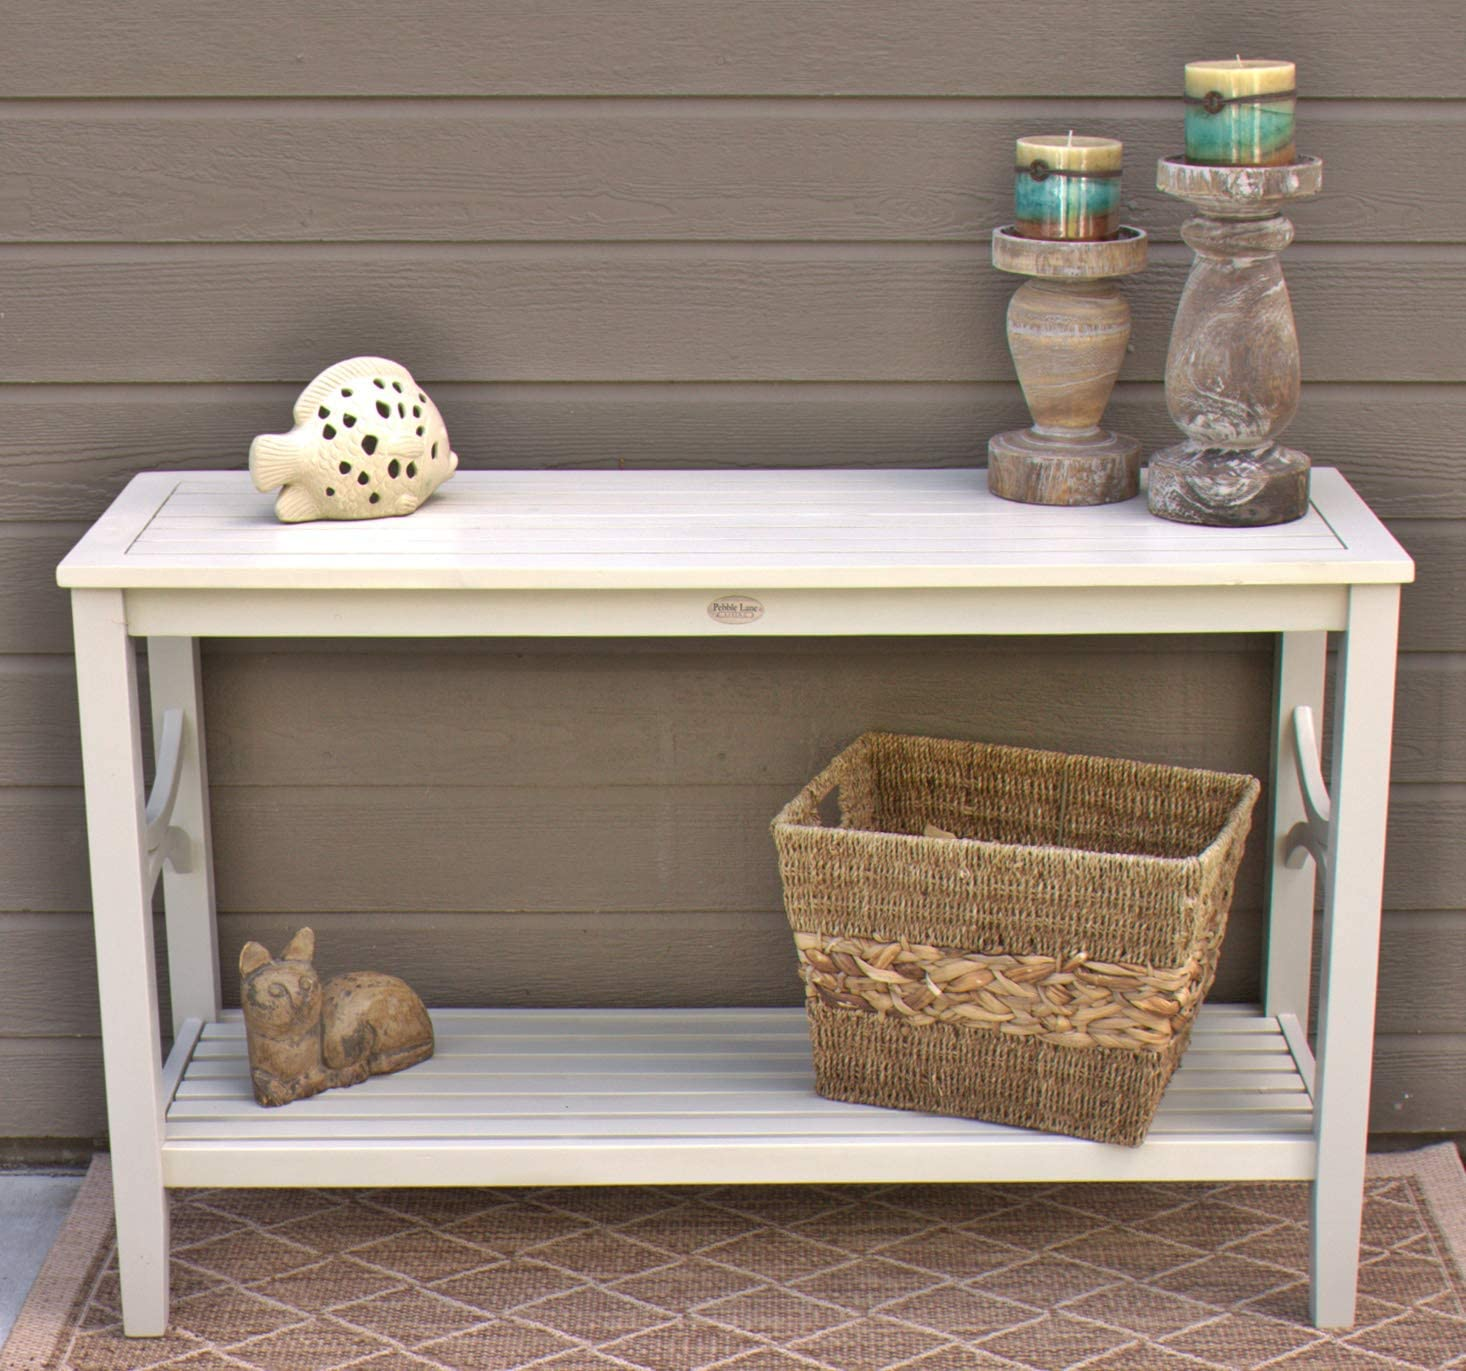 White Wash Pebble Lane Living Solid Wood Outdoor or Indoor Patio Console Serving Bar Table with Lower Shelf